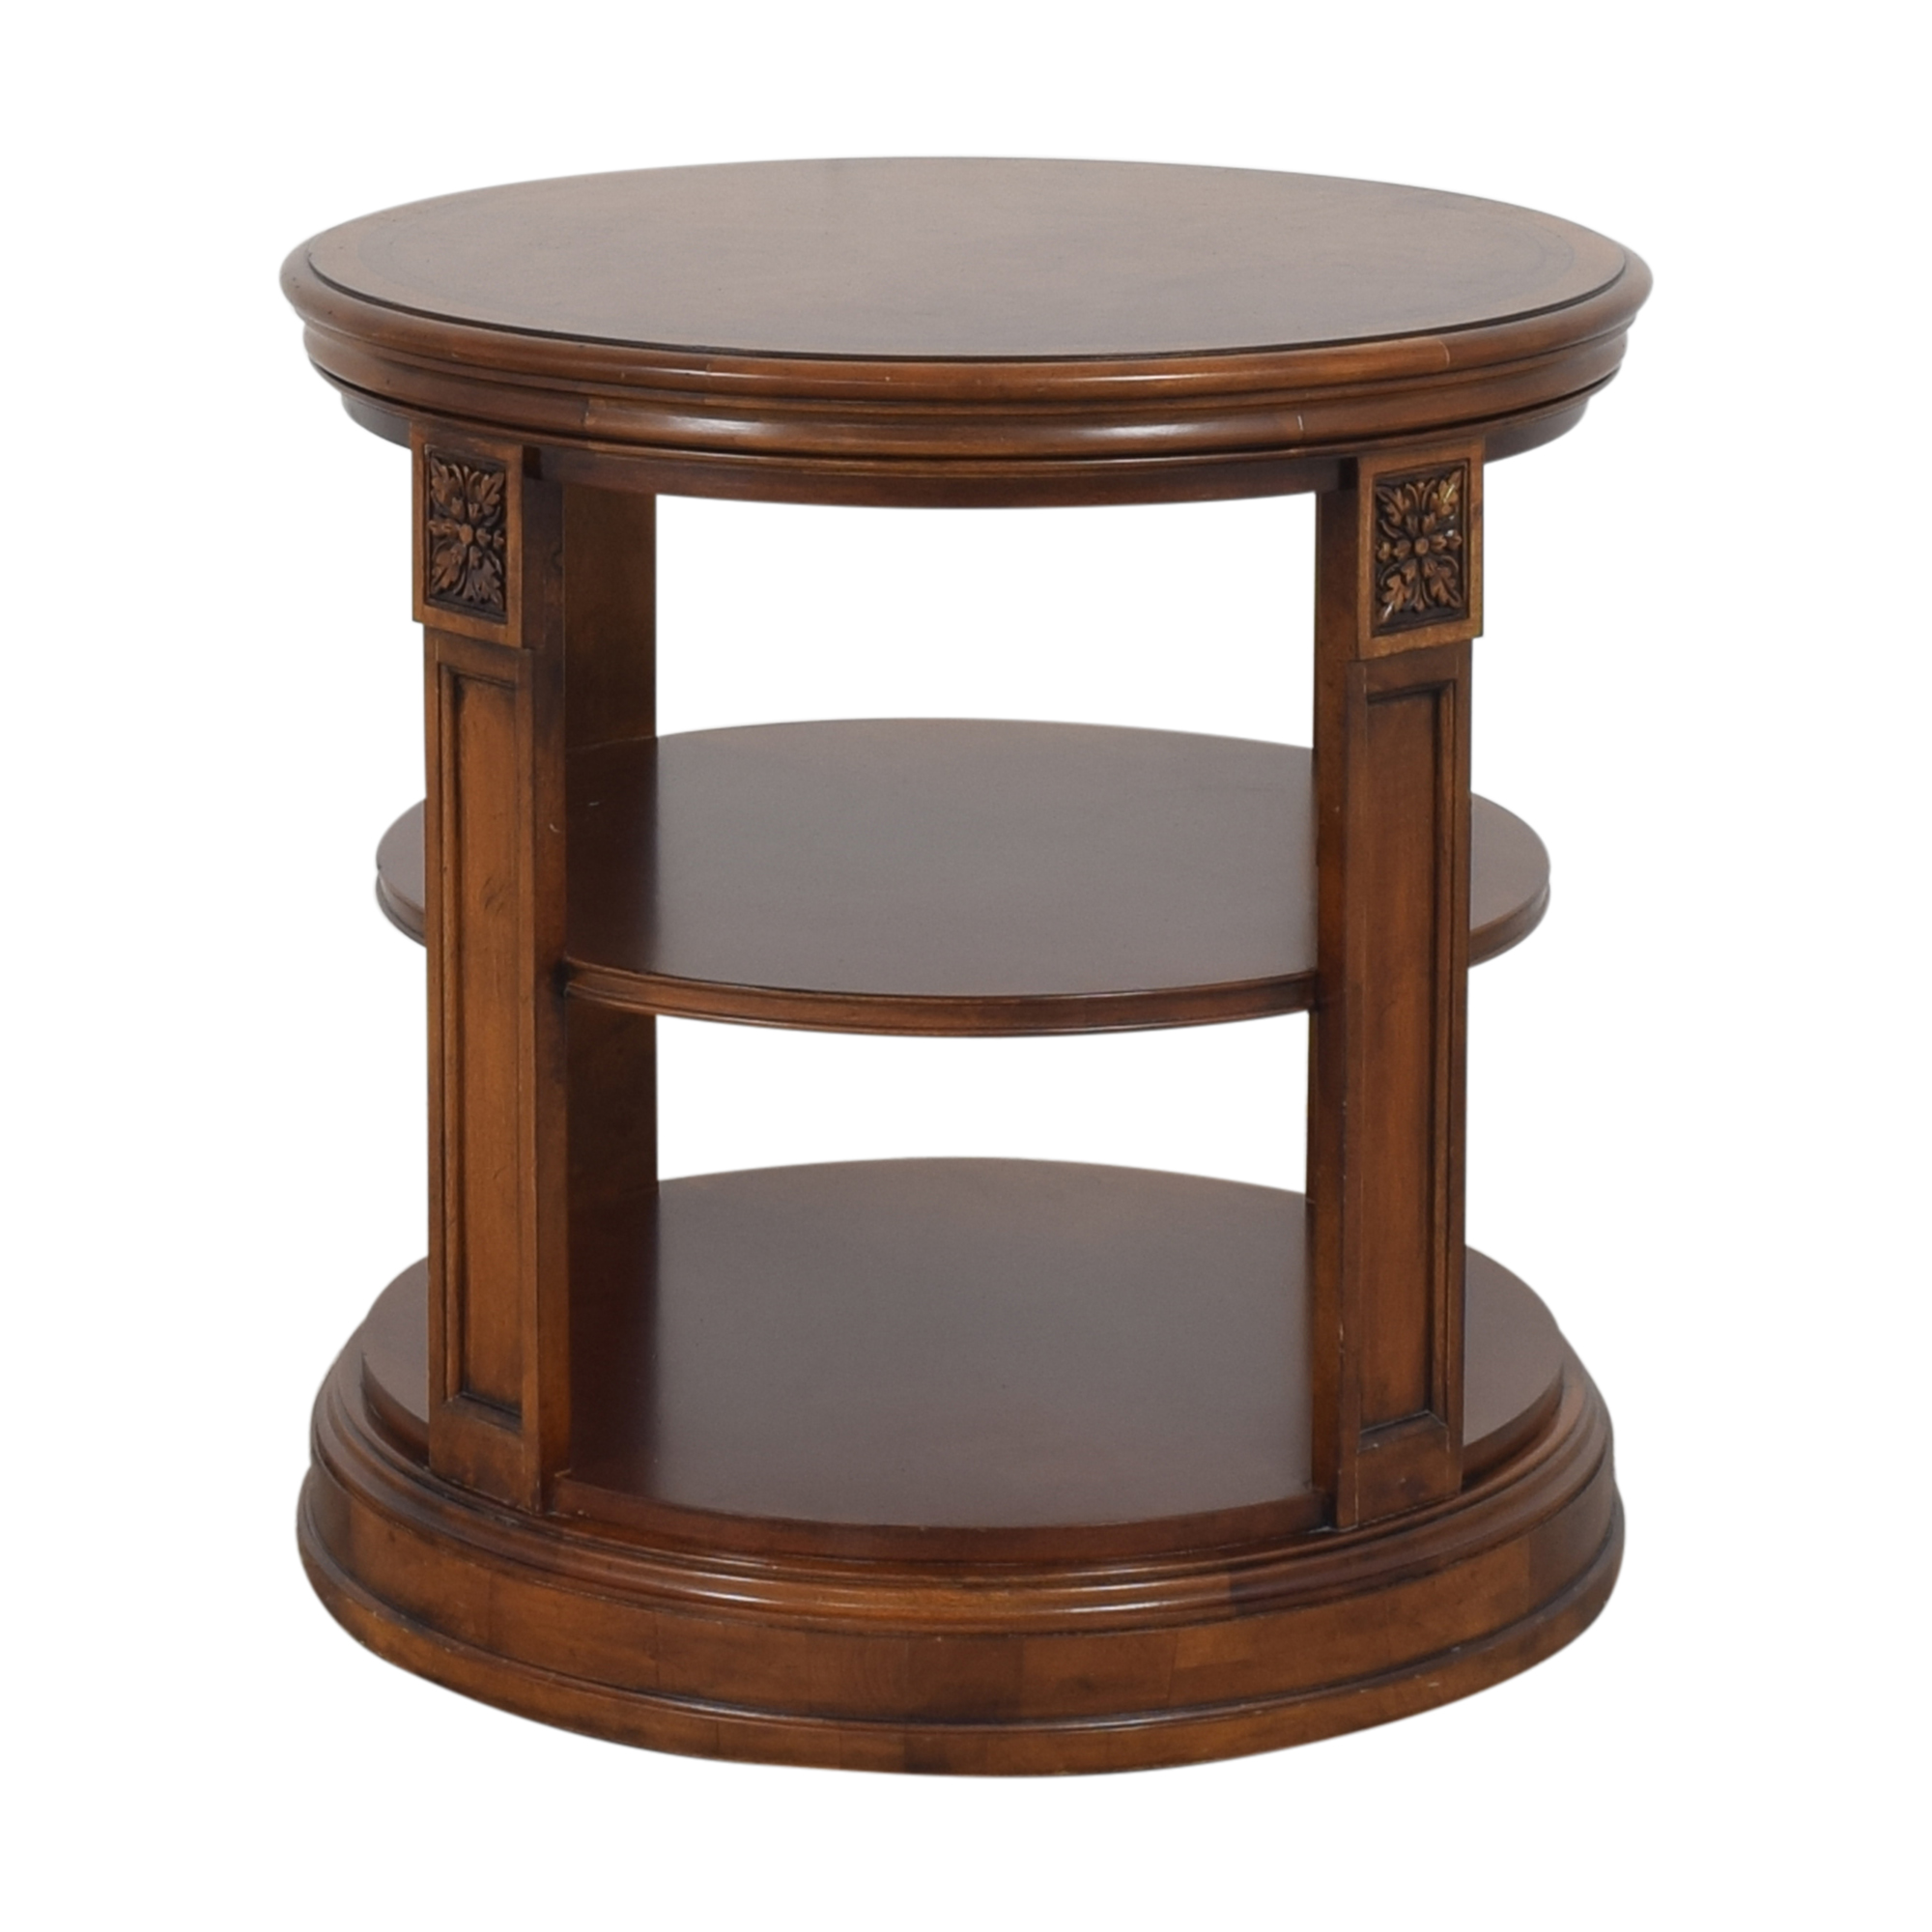 Ethan Allen Ethan Allen Seaver Library Table